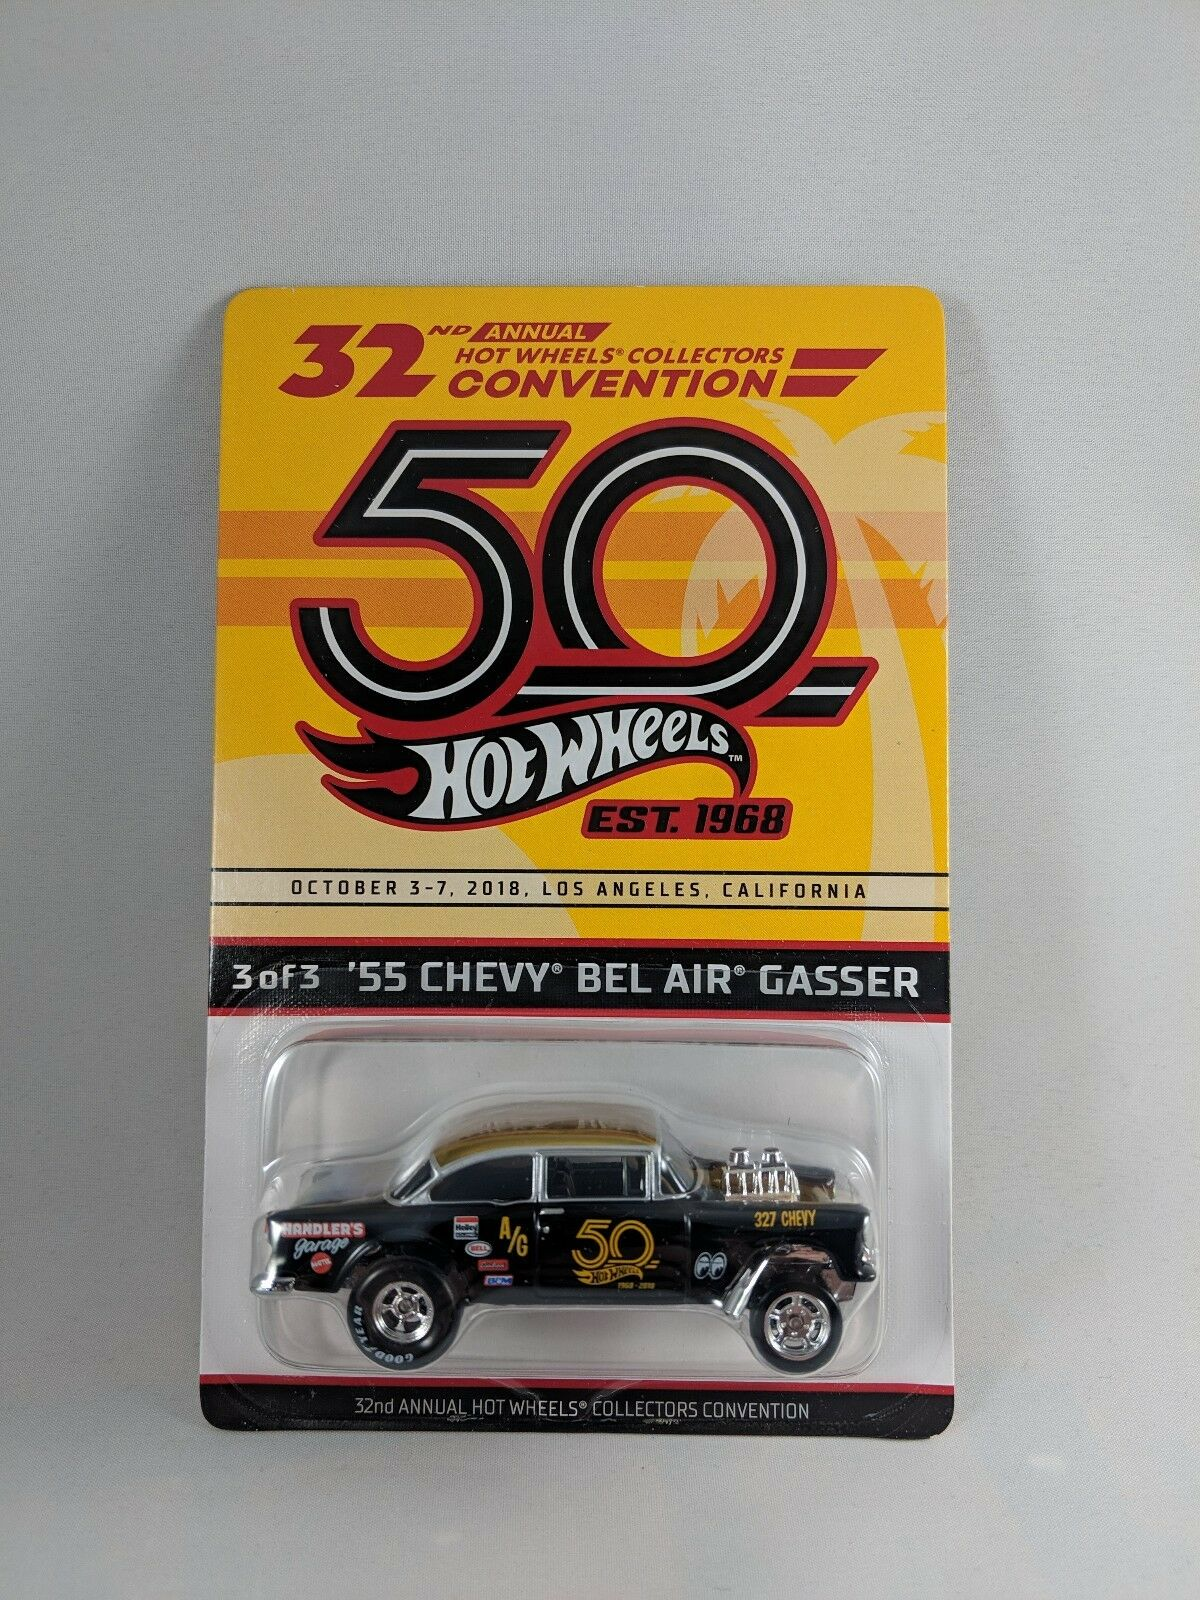 2018 Hot wheels 32nd convention convention convention '55 Chevy Bel Air Gasser 9afeed